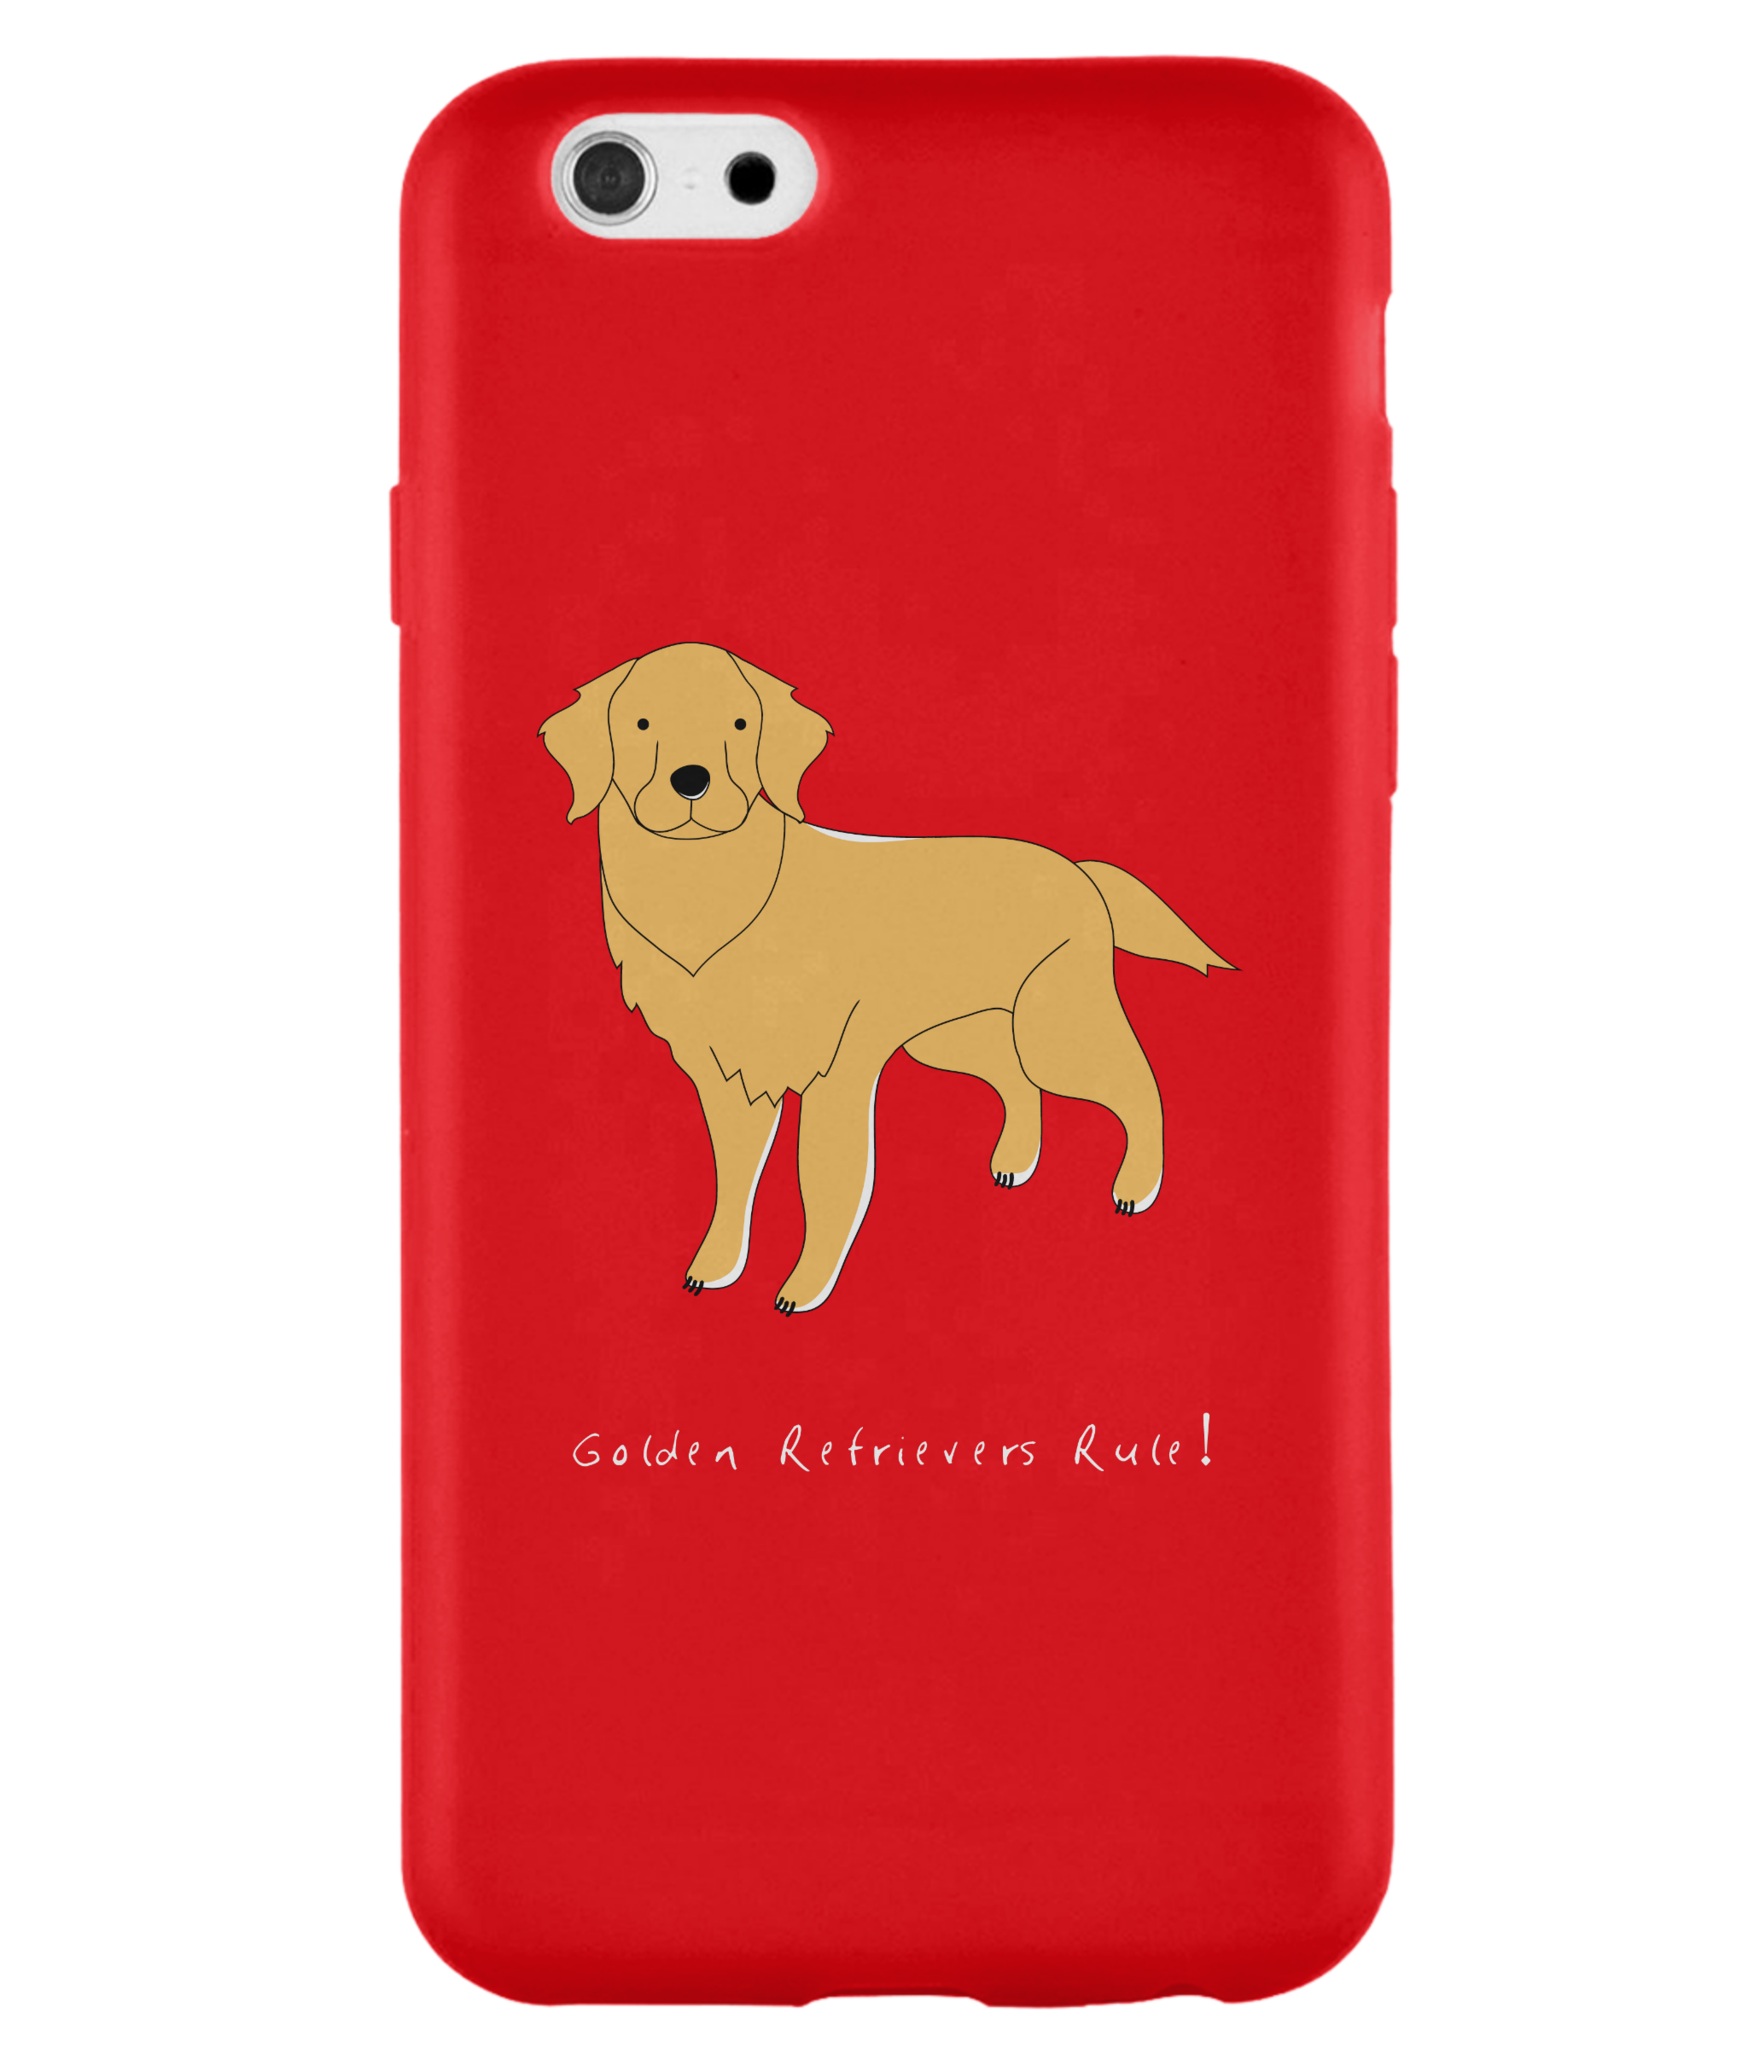 iPhone 6 Full Wrap Case - Golden Retrievers Rule! - Dogs Rule!